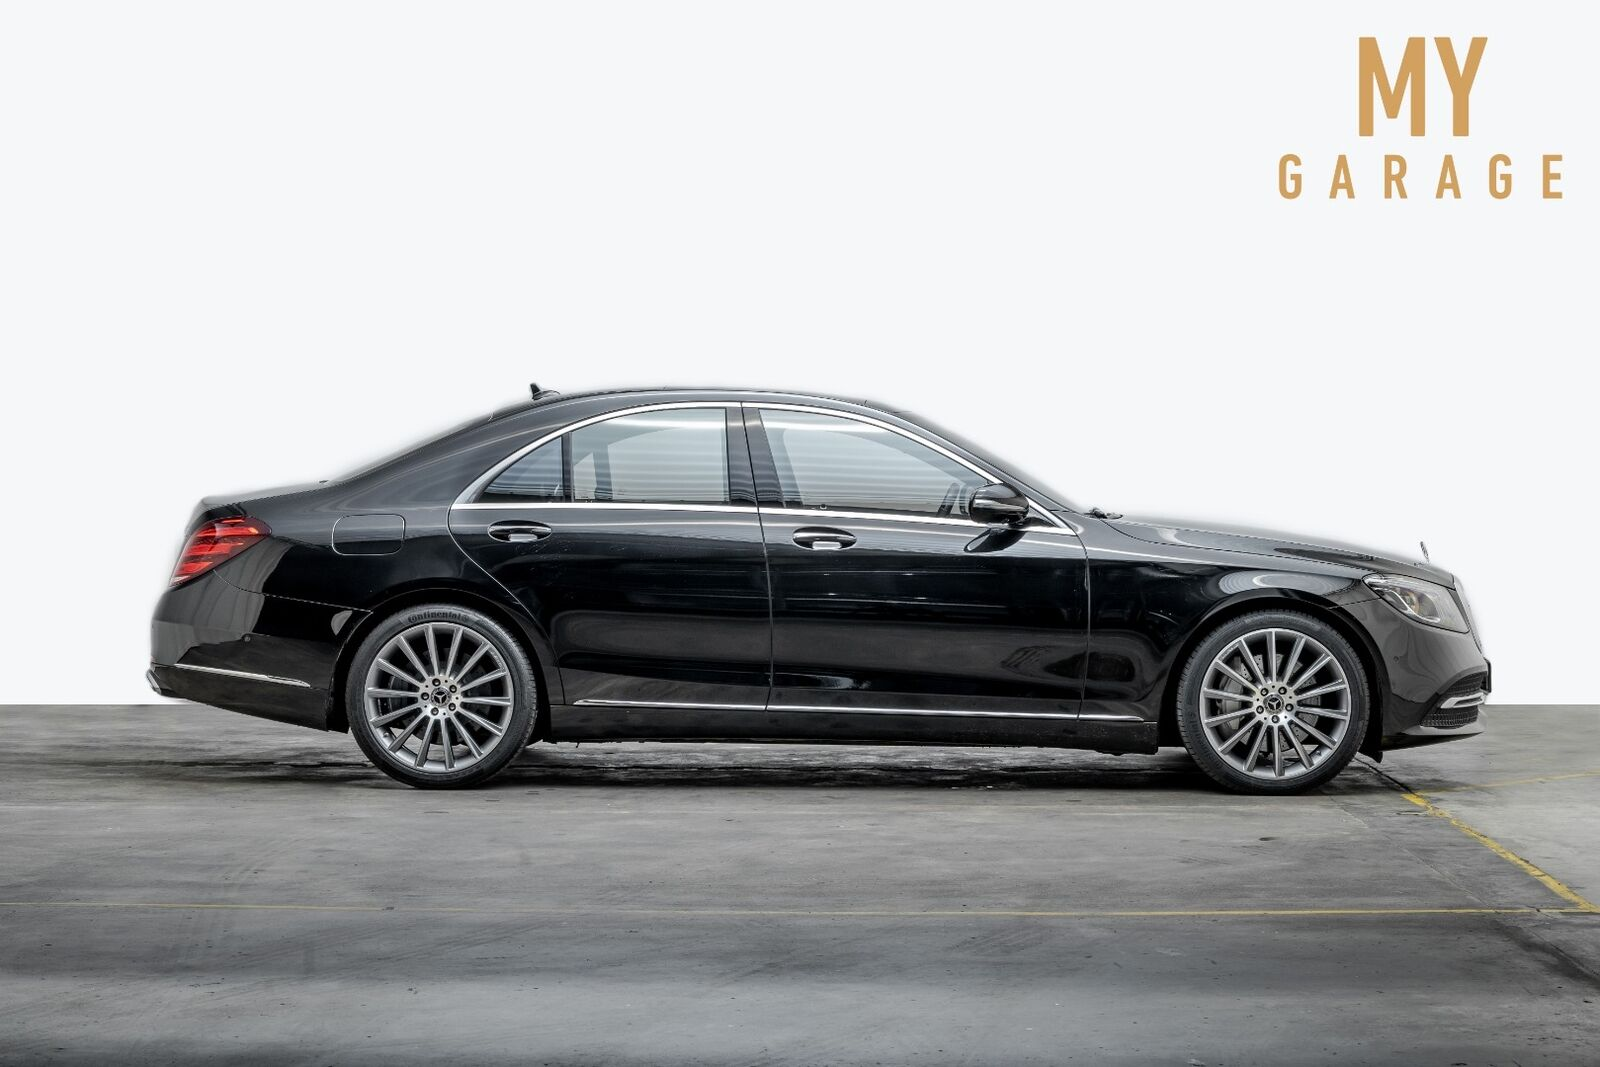 Mercedes S500 4,7 aut. 4Matic 4d - 6.995 kr.